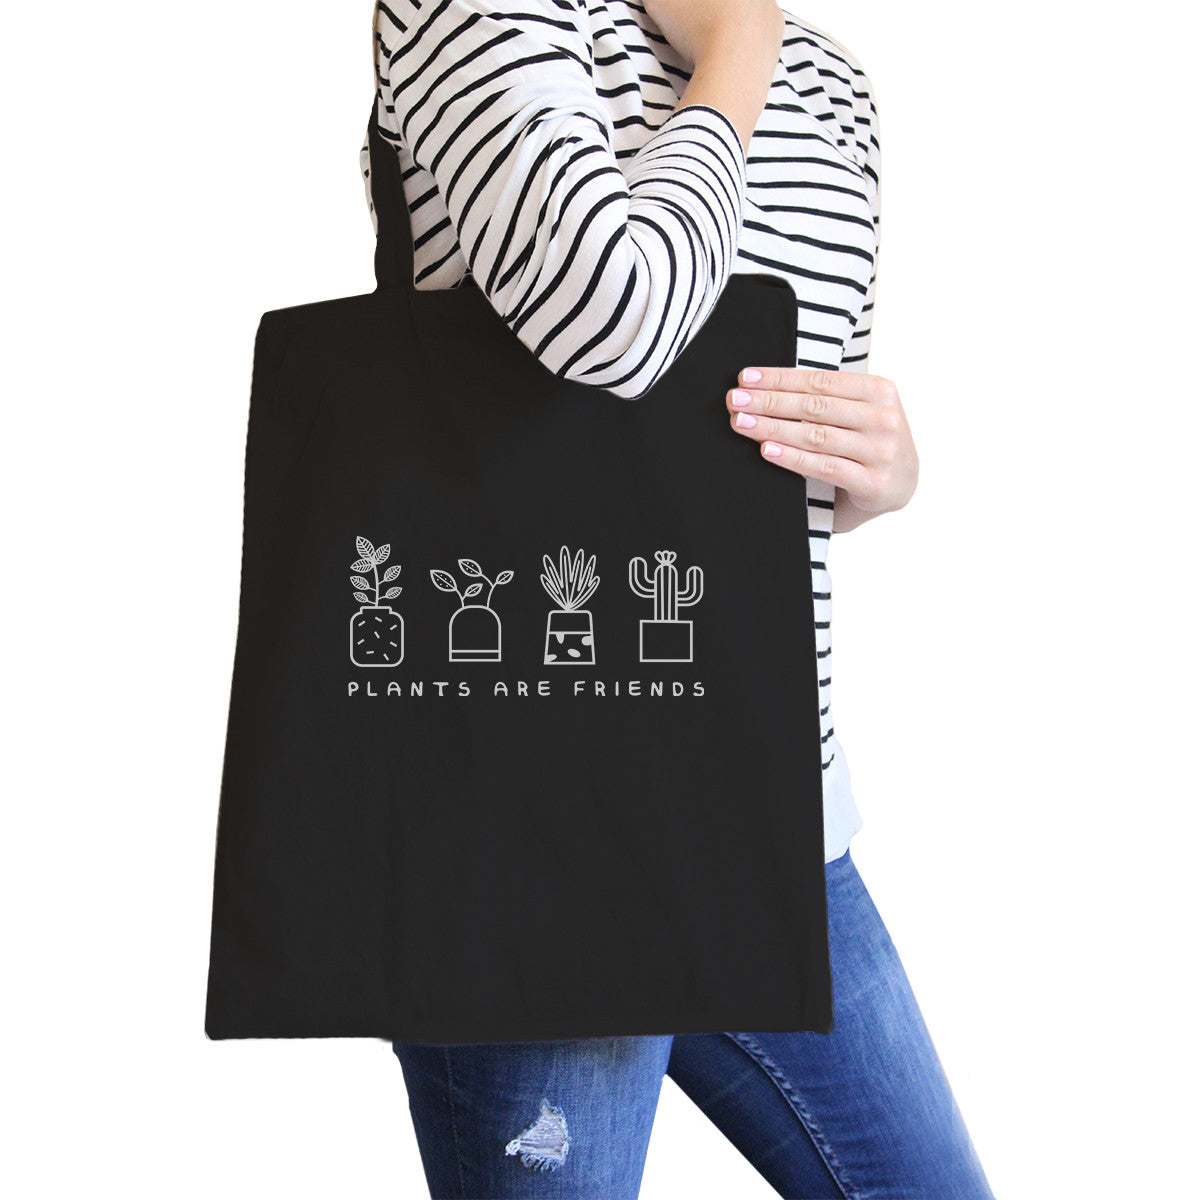 85caff3b792 Plants Are Friends Black Canvas Bag Cute Design Gift Ideas For Her ...